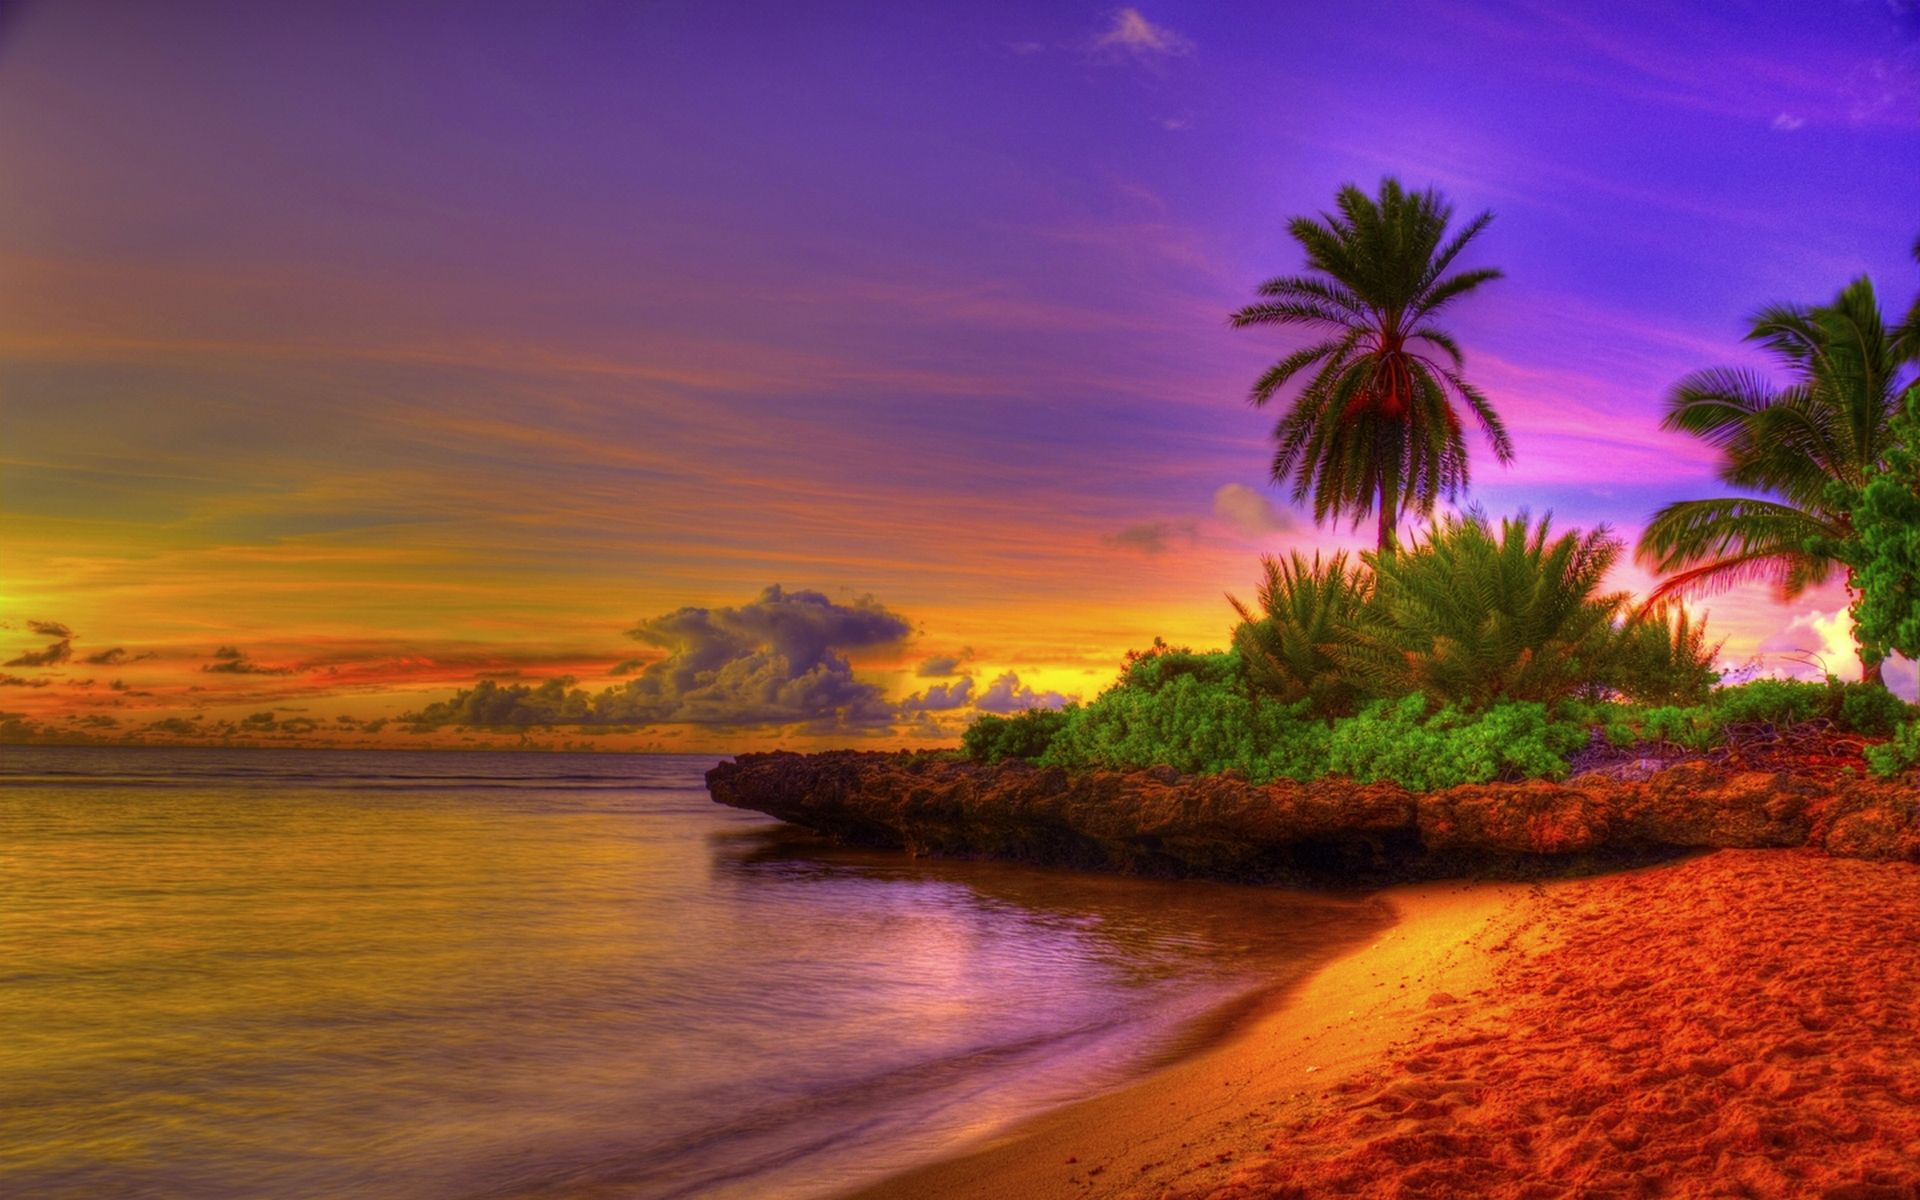 Free Tropical Pictures Download Hd Tropical Beach Wallpaper Beach Background Beach Wallpaper Tropical Beach